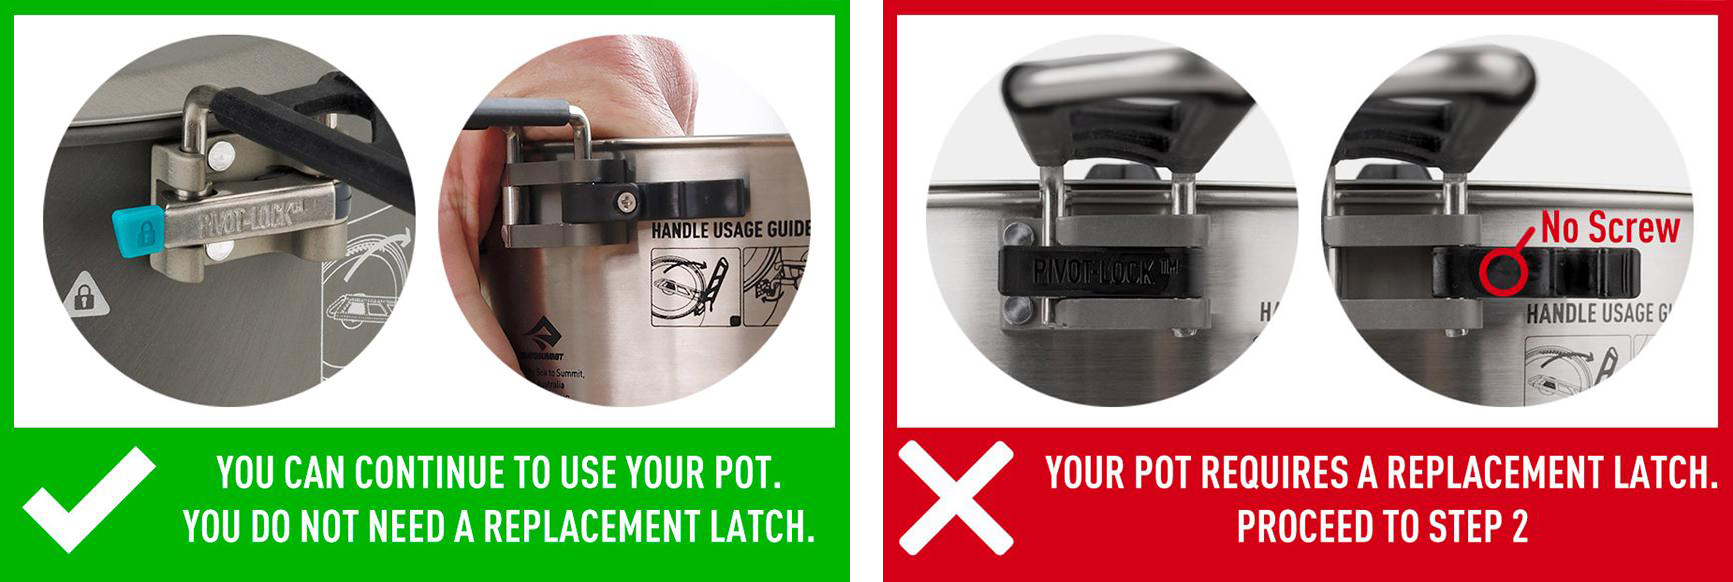 Recall from Sea to Summit Cook Pot Latch